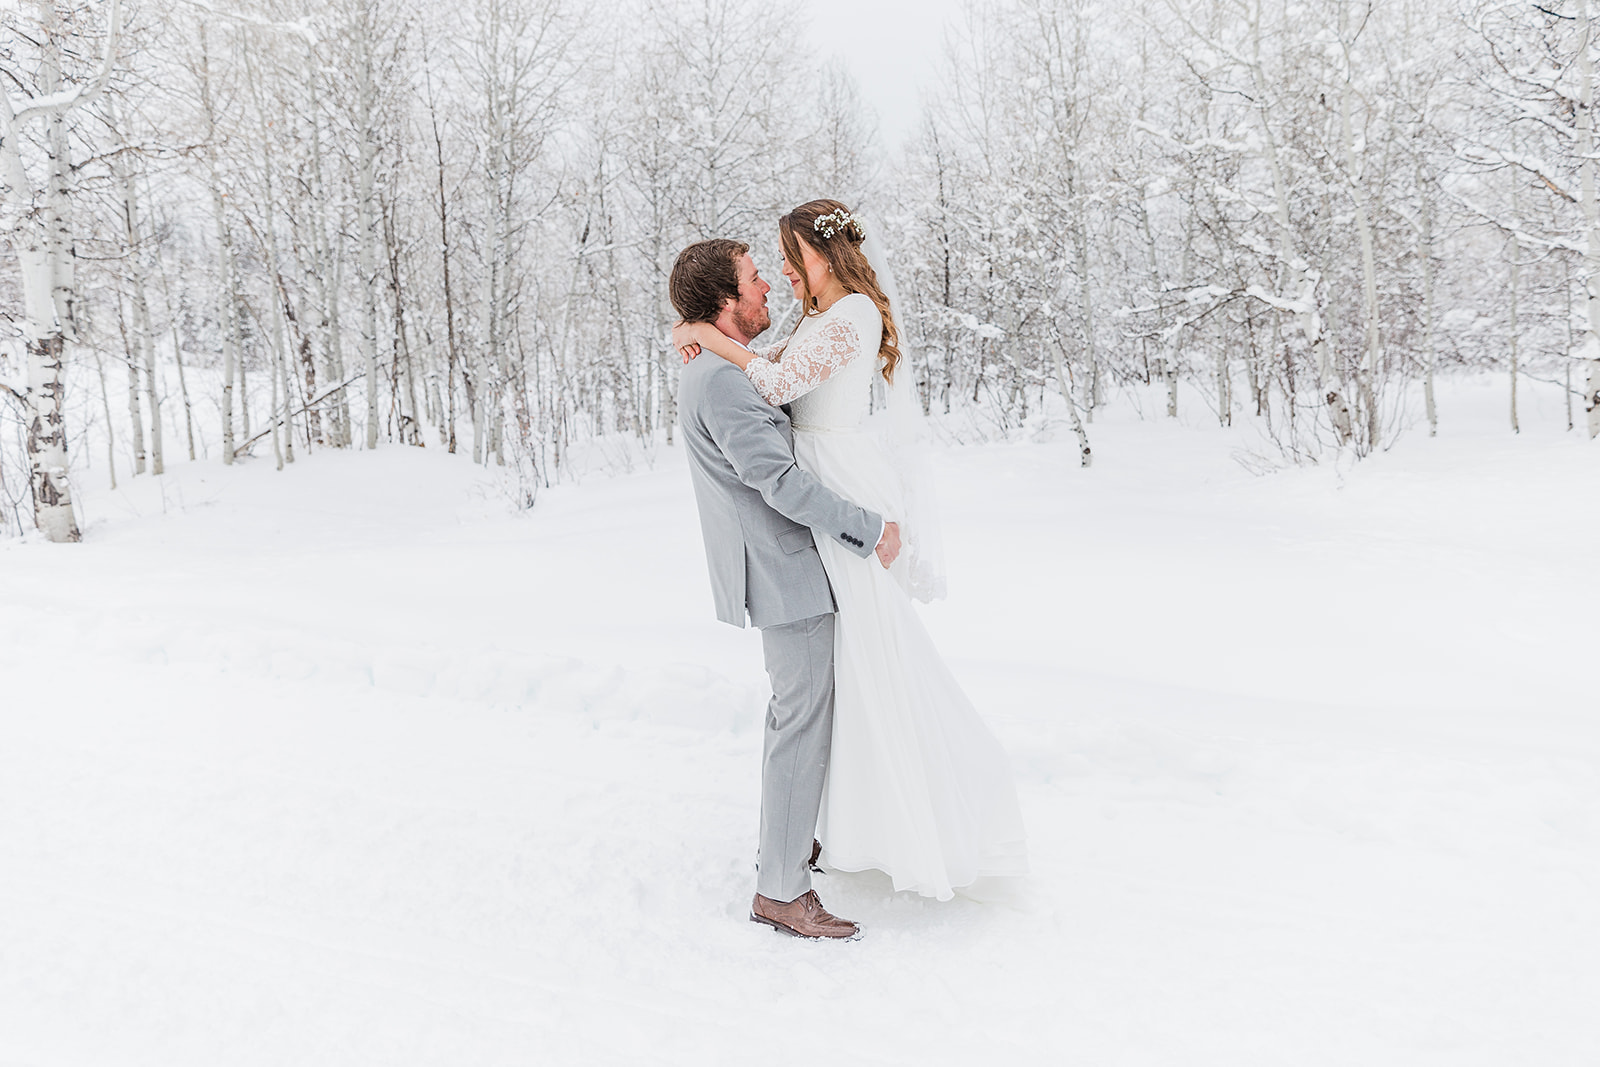 lifting up the bride romantic couple pose for weddings sweet couple interesting background tony's grove wedding picture location ideas winter wedding inspiration cache valley couple sweet moment captured winter wedding goals wedding aesthetic #winterwedding #formals #tony'sgrove #cachevalley #snowcoveredtrees #bellaalderphotography #professionalphotographer #winterwonderland #couplegoals #weddingattire